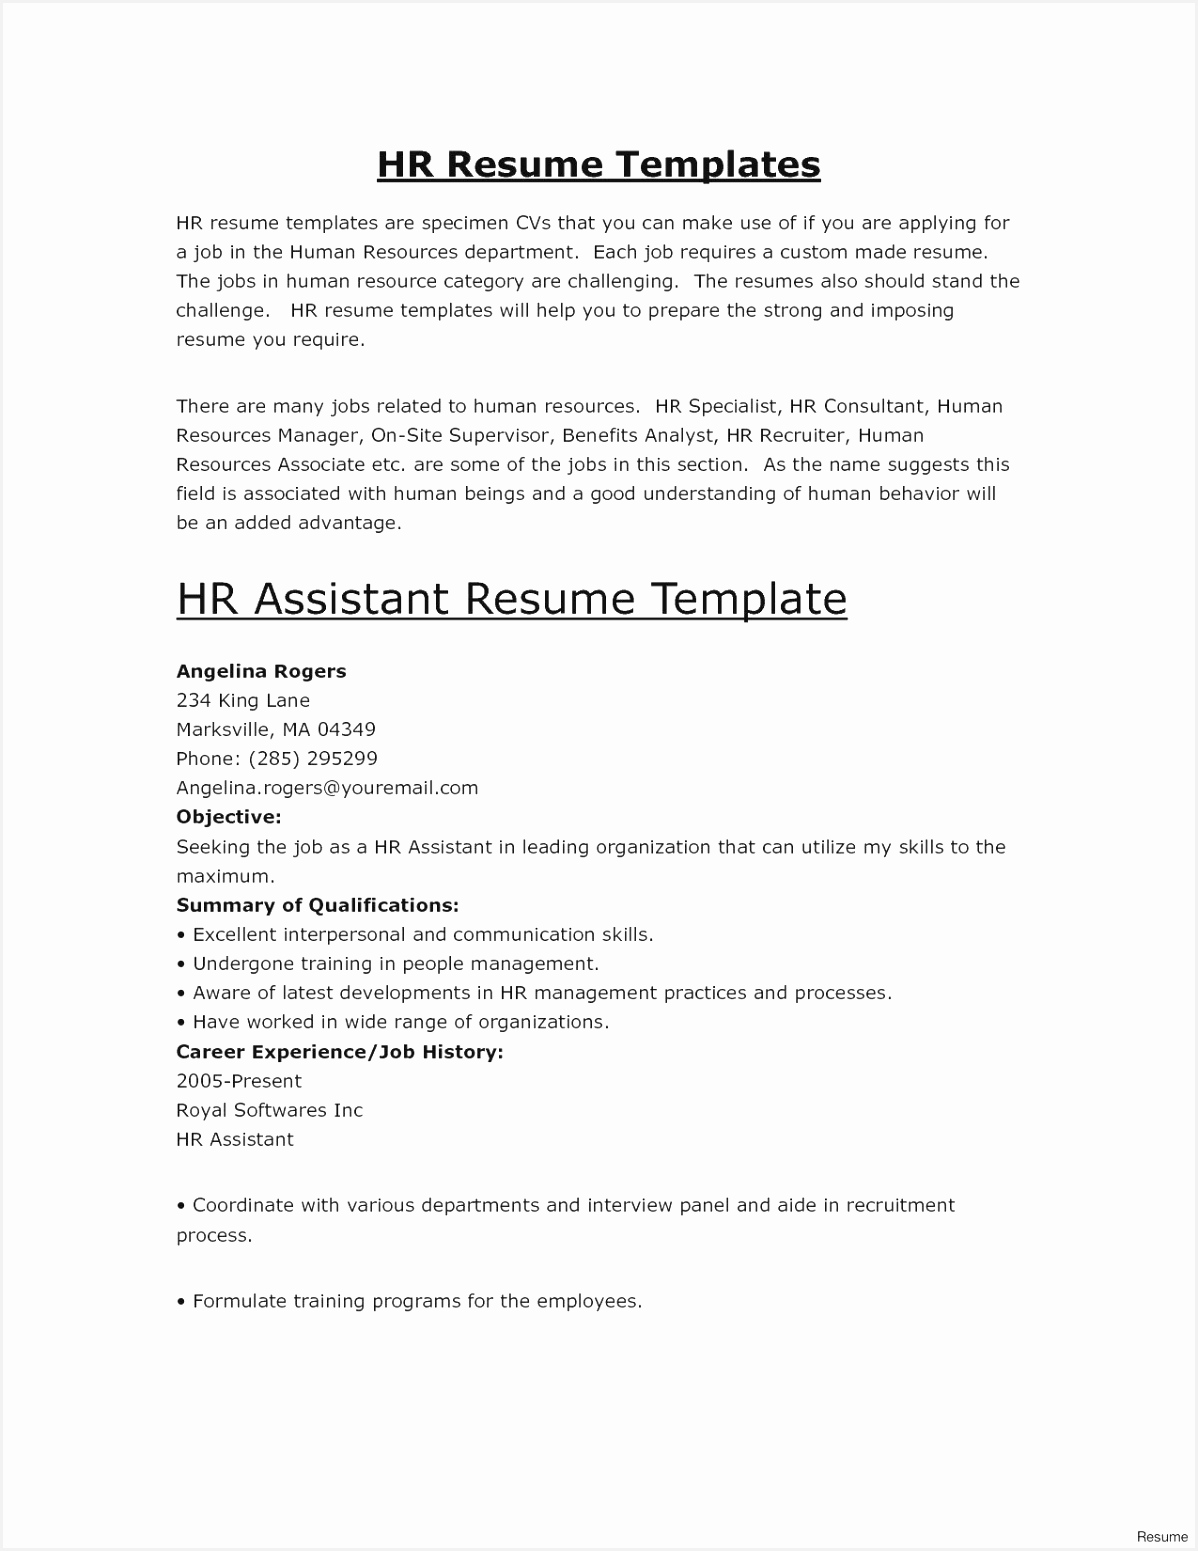 Electrical Engineering Resume Template Fwavj Elegant Electrical Engineer Resume Sample Of 7 Electrical Engineering Resume Template